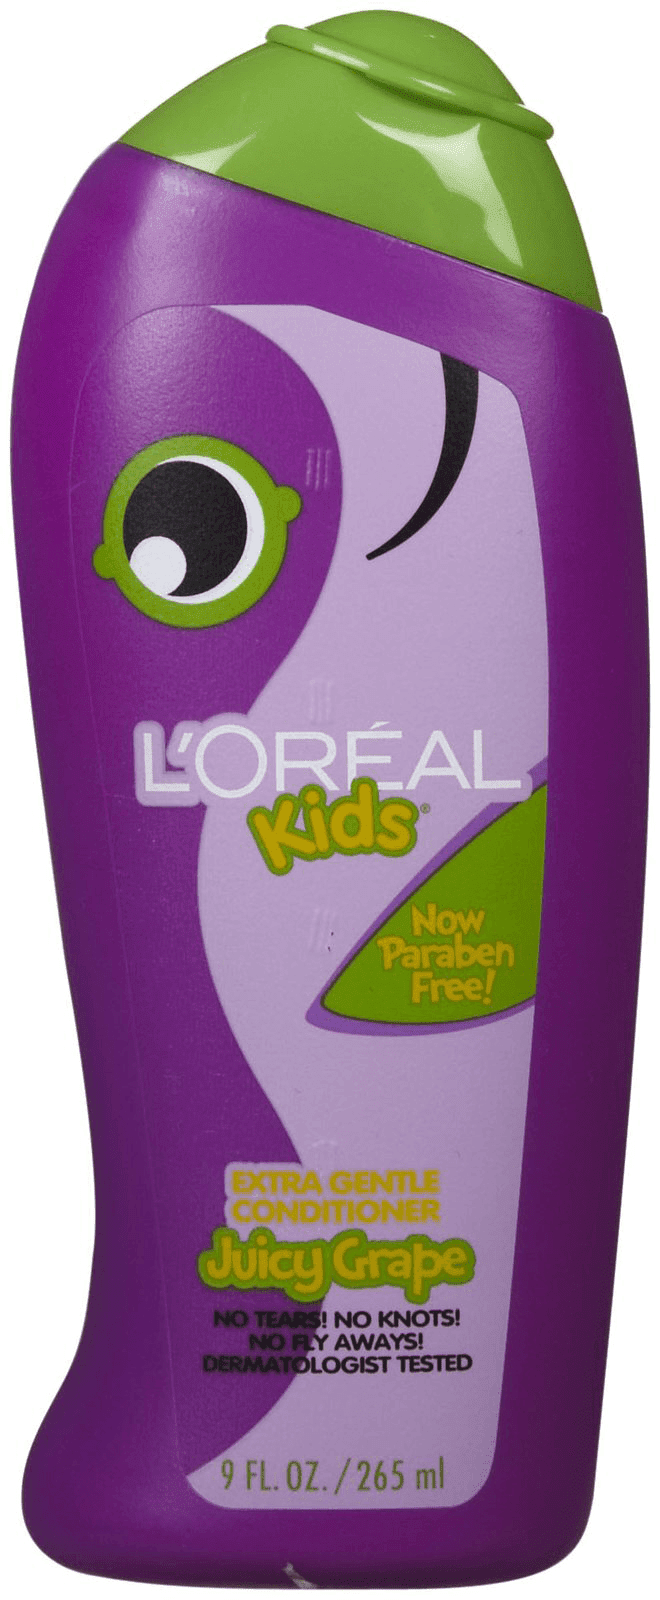 L'Oreal Kids Extra Gentle Grape